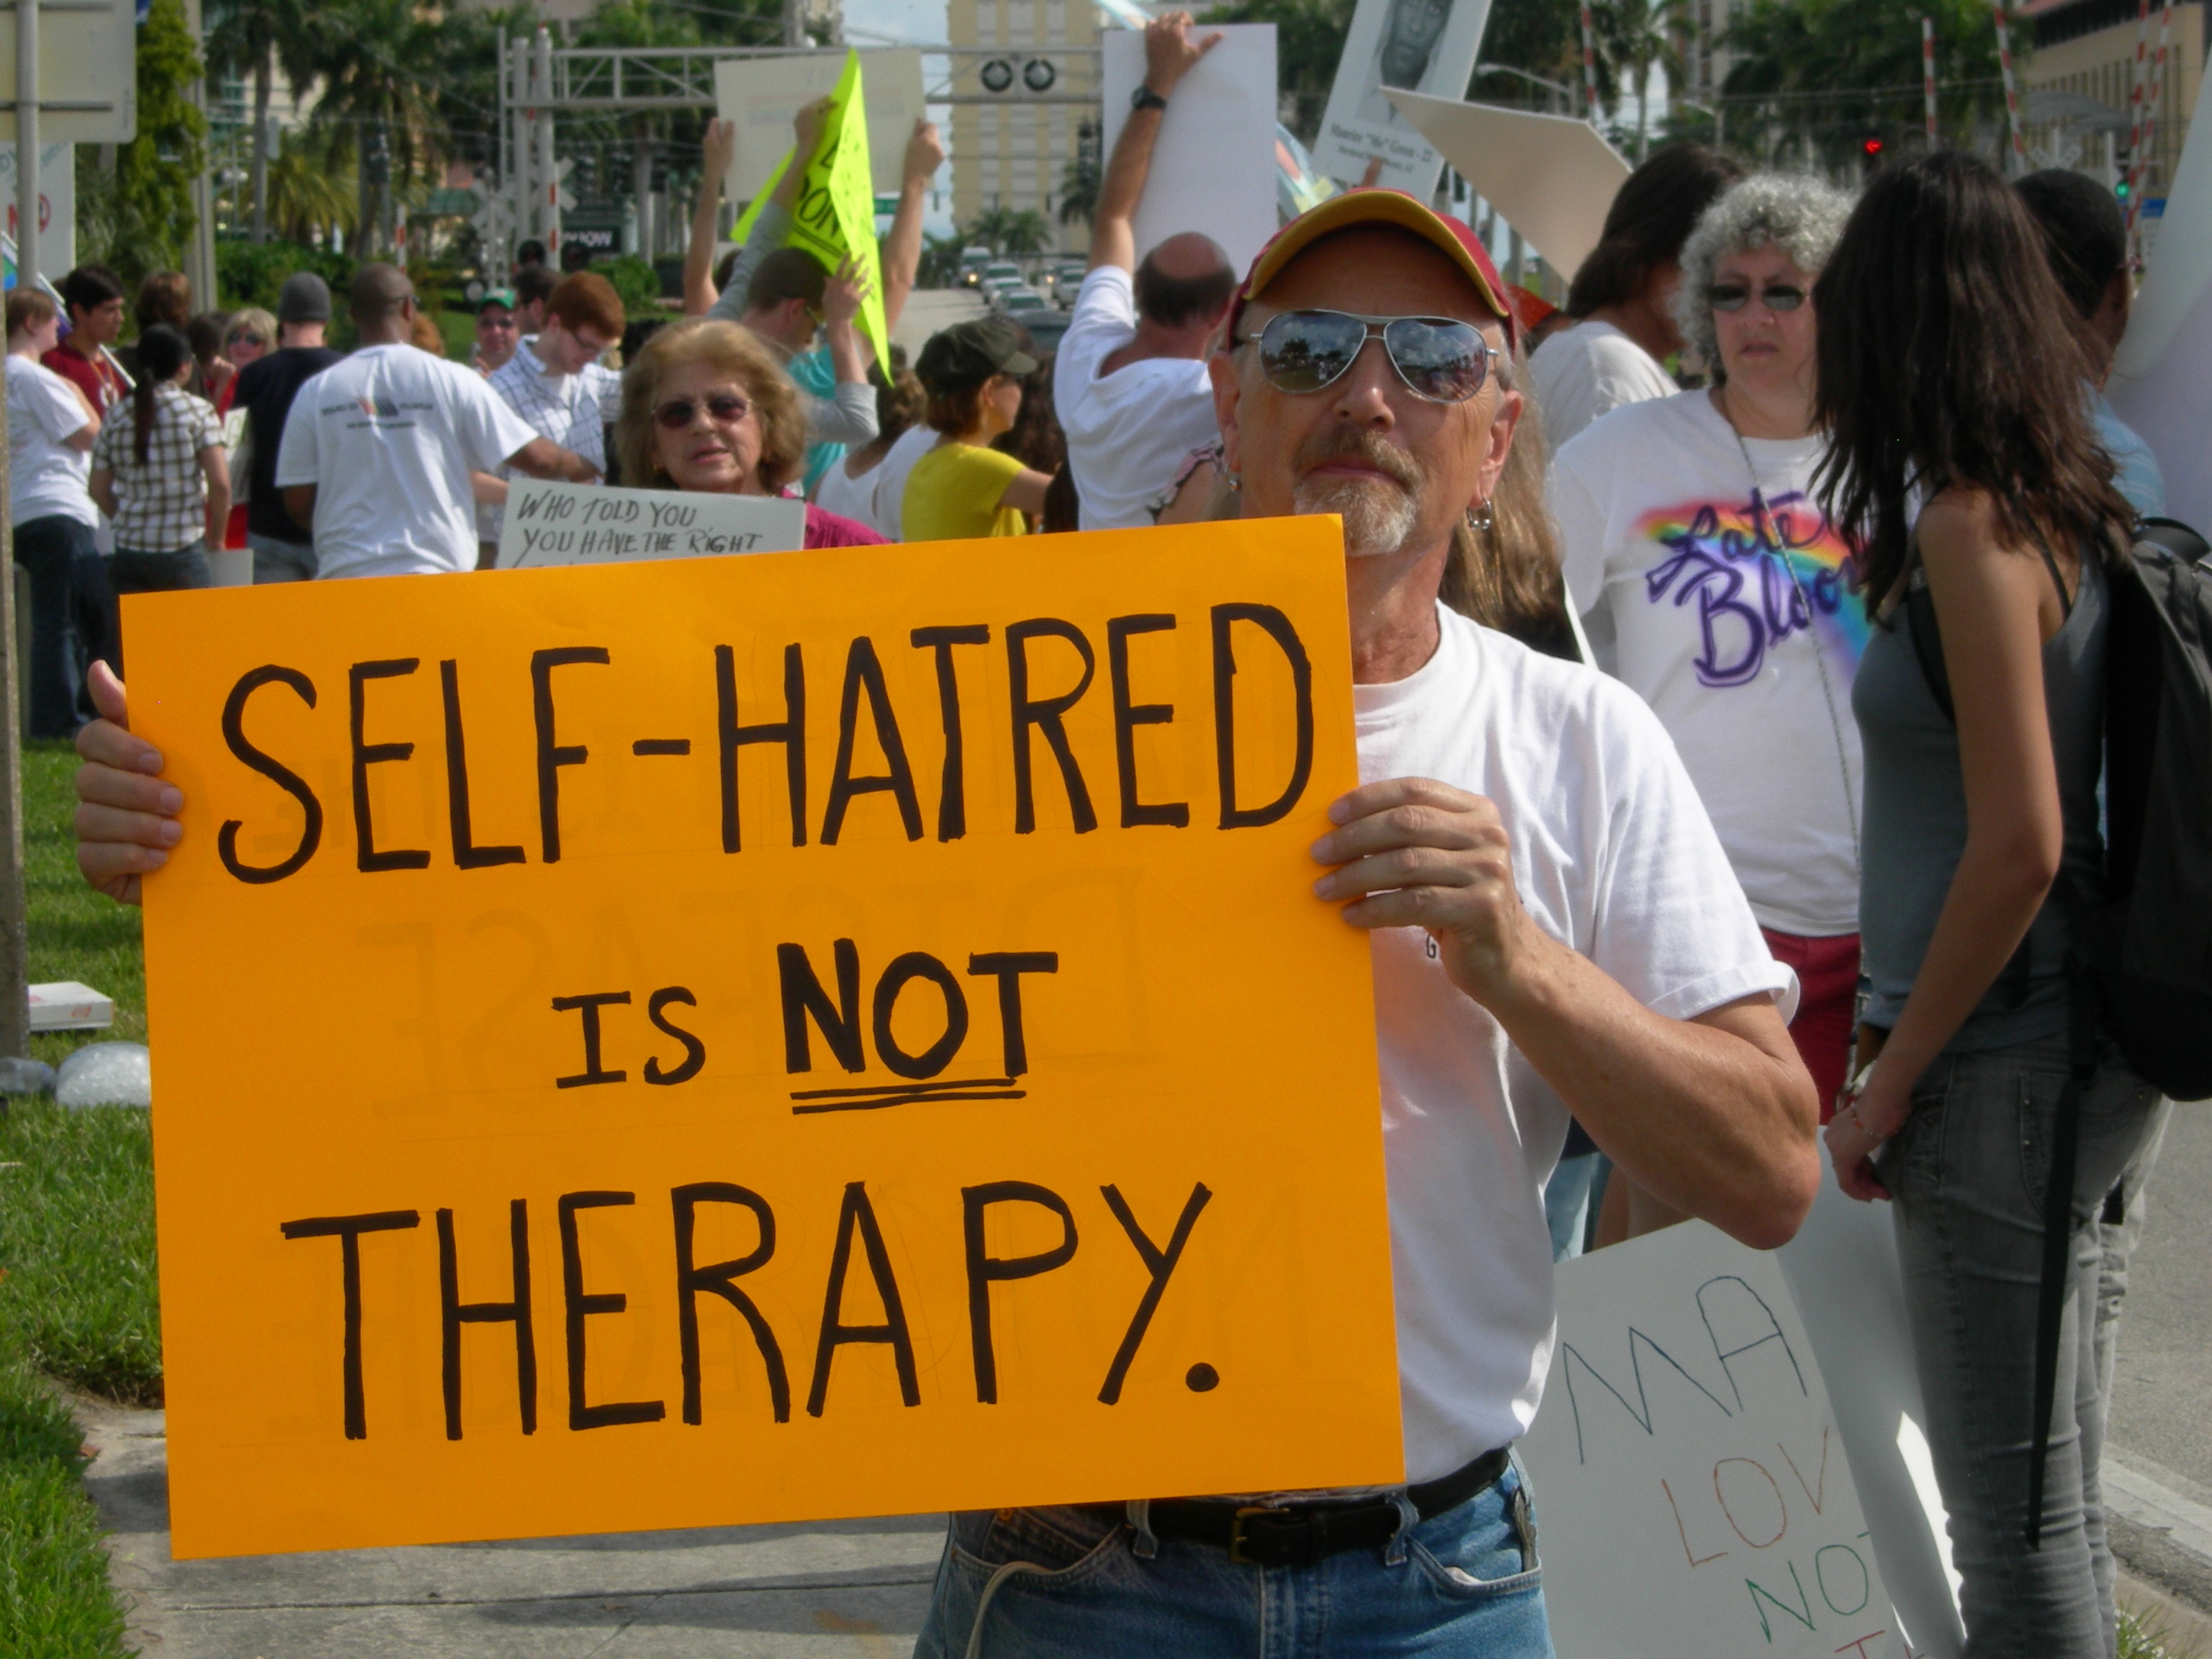 Will conversion therapy be banned in the U.S.?